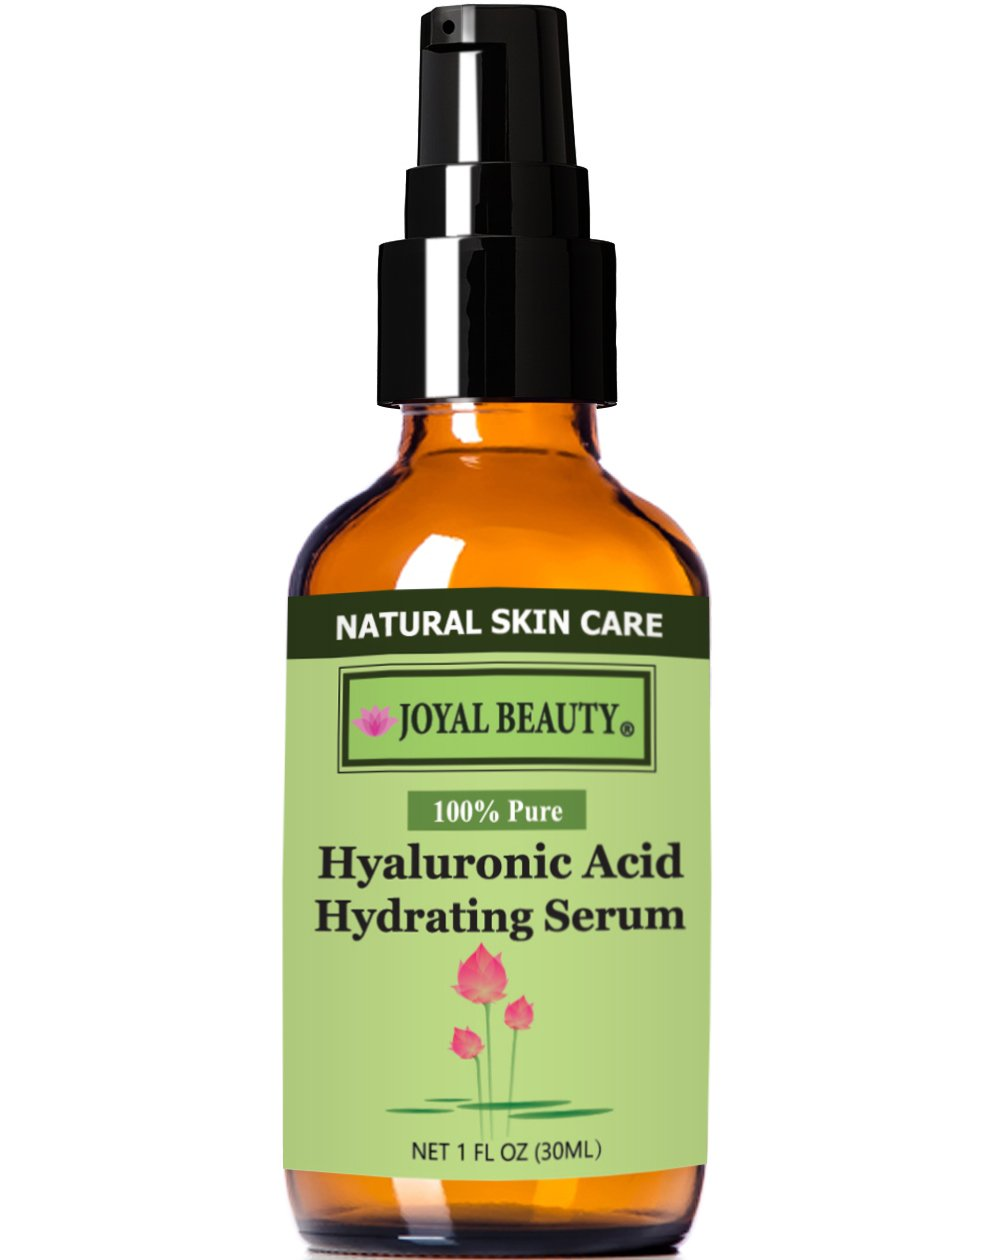 Hyaluronic Acid Hydrating Serum 100 Pure by Joyal Beauty. The Purest Form. All Natural. Vegan. Alcohol-free.Chemical-free. Premium Hyaluronic Acid for Younger, Firmer and Plump Skin.